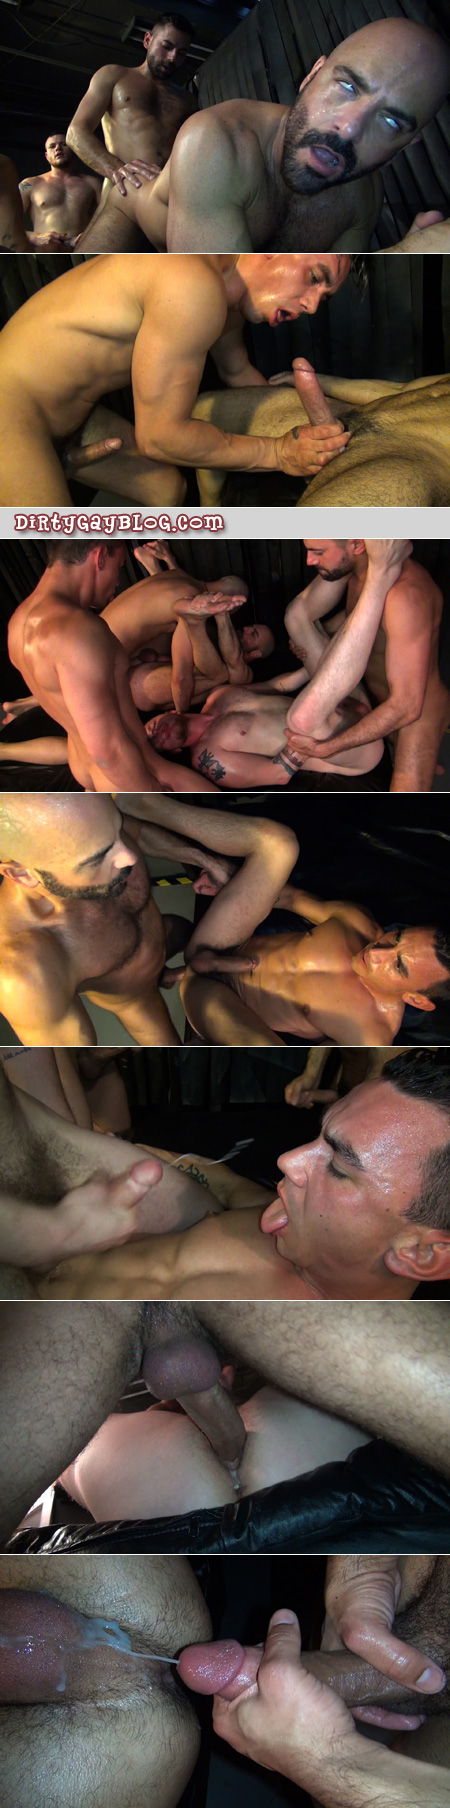 Gay sex bareback orgy fills lots of cum lovers' holes with semen.